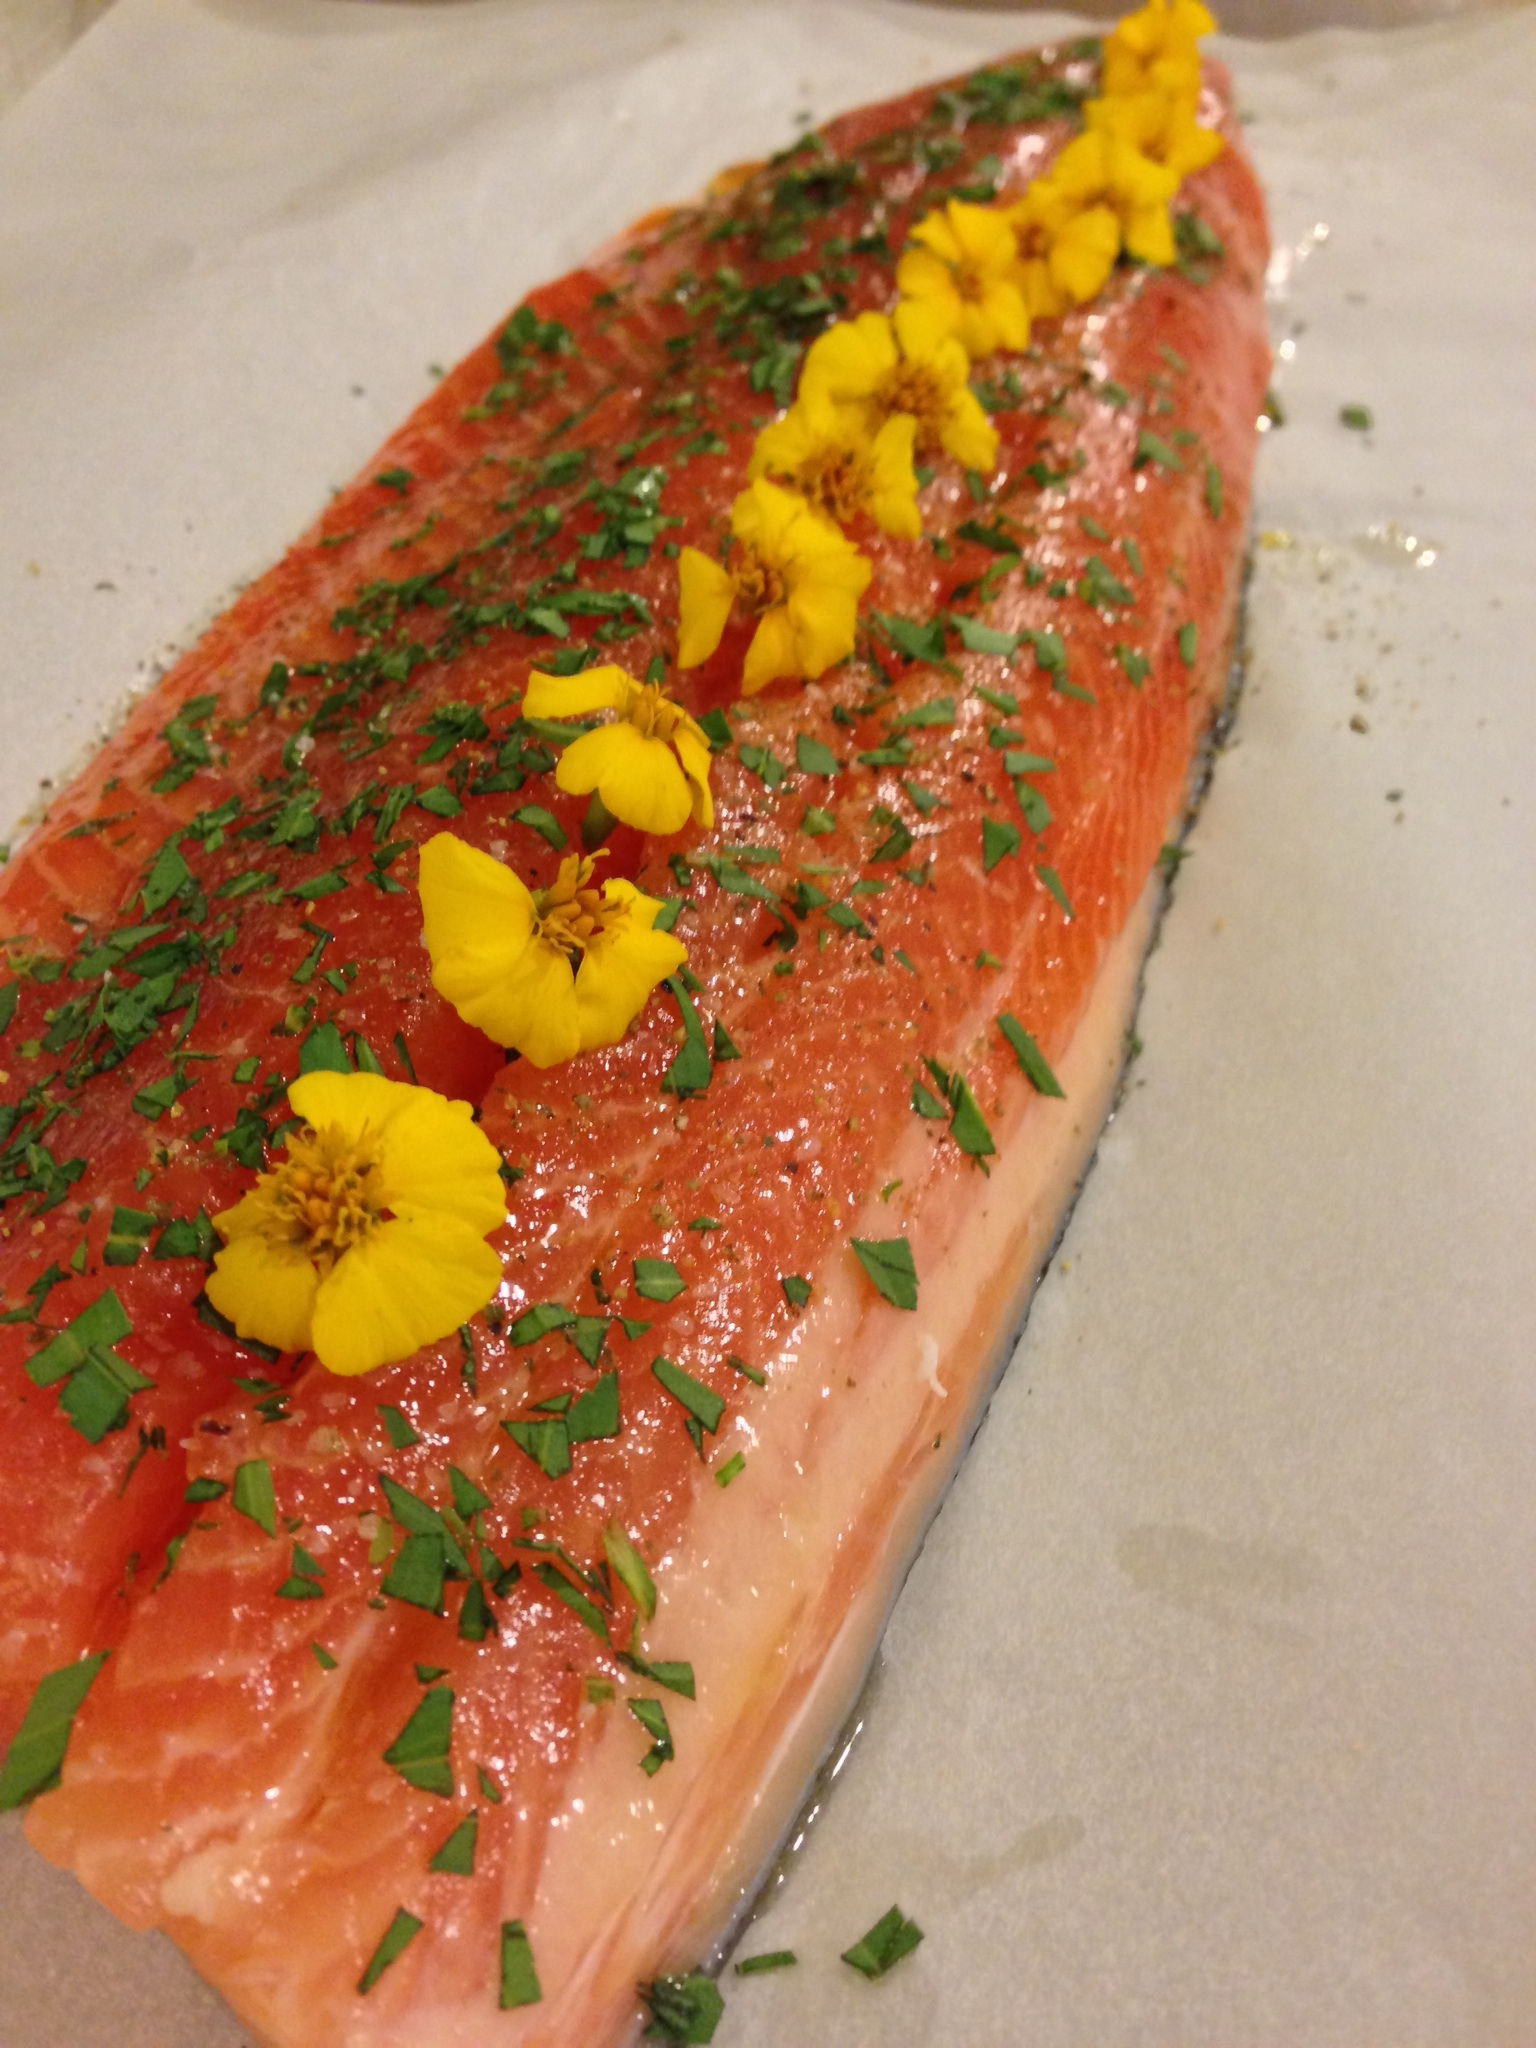 Baked trout.